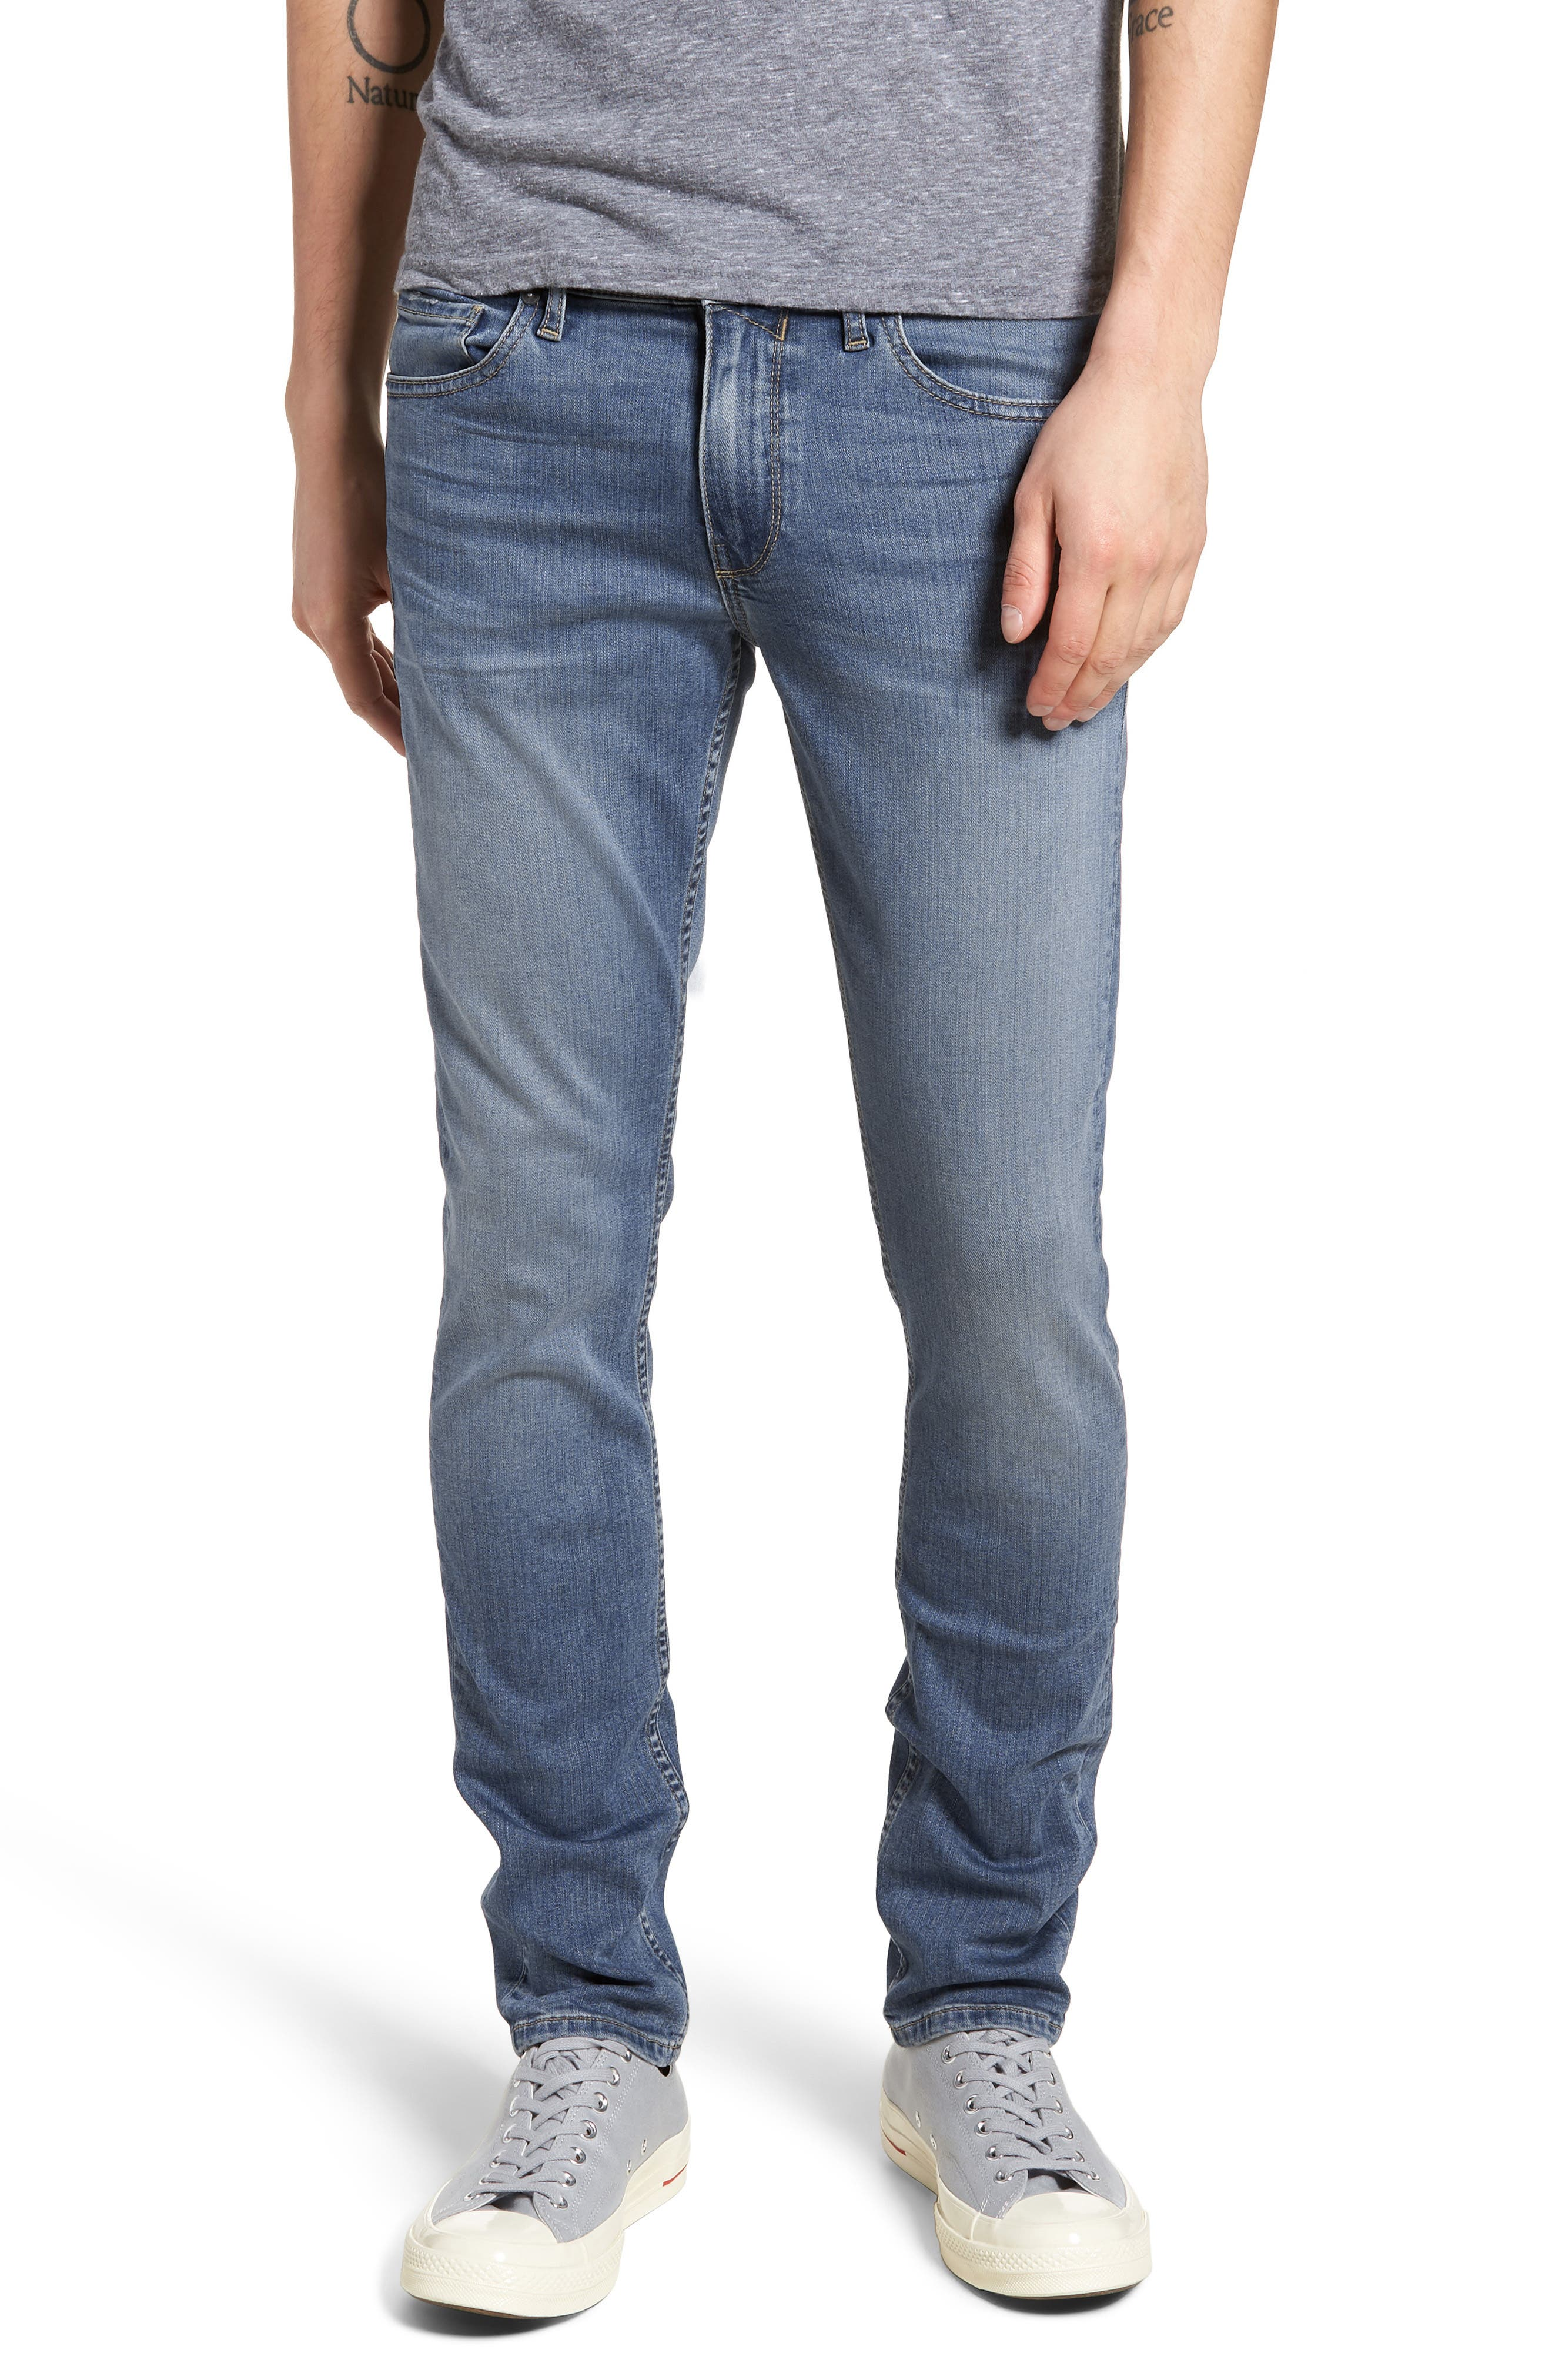 Croft Skinny Fit Jeans,                         Main,                         color, 400